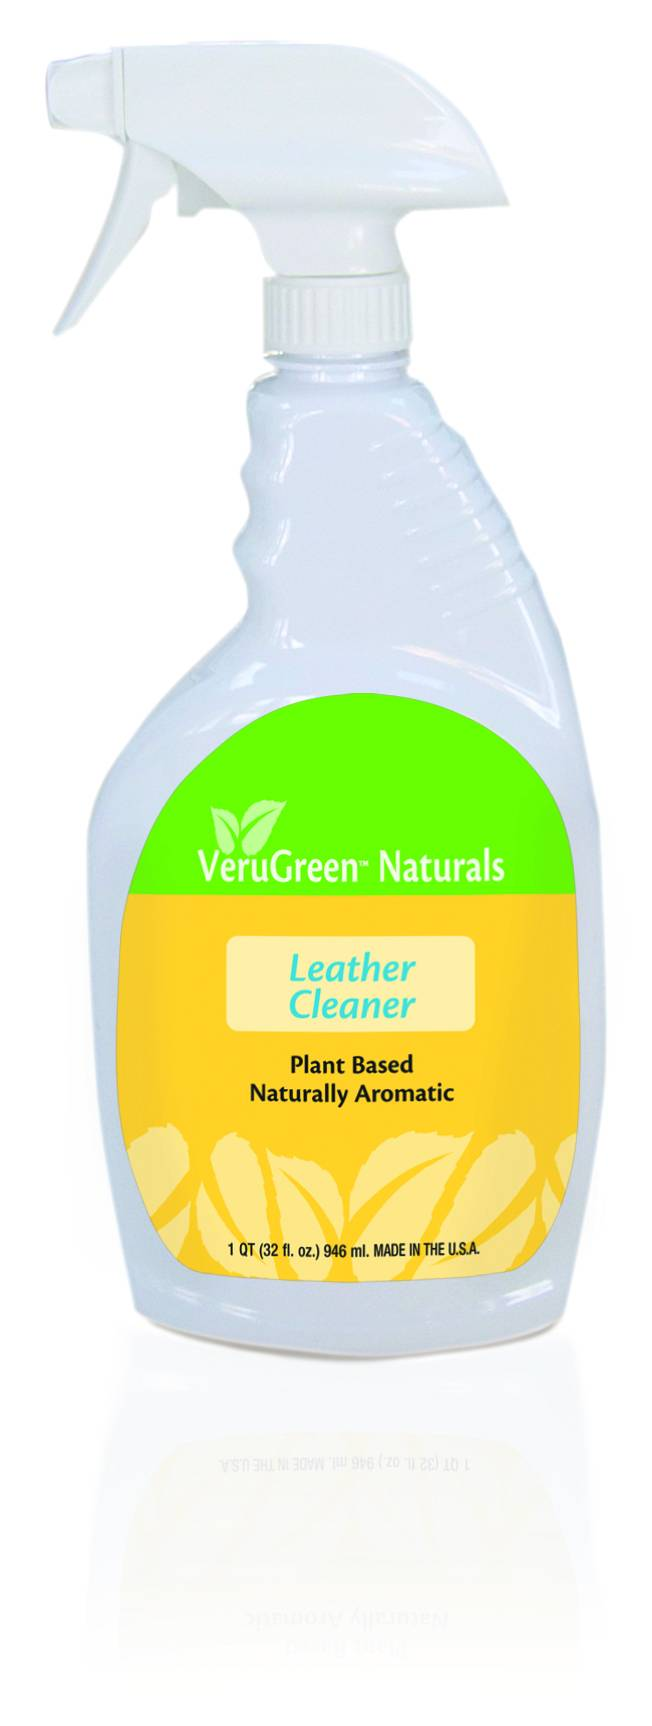 VeruGreen Naturals Leather Cleaner